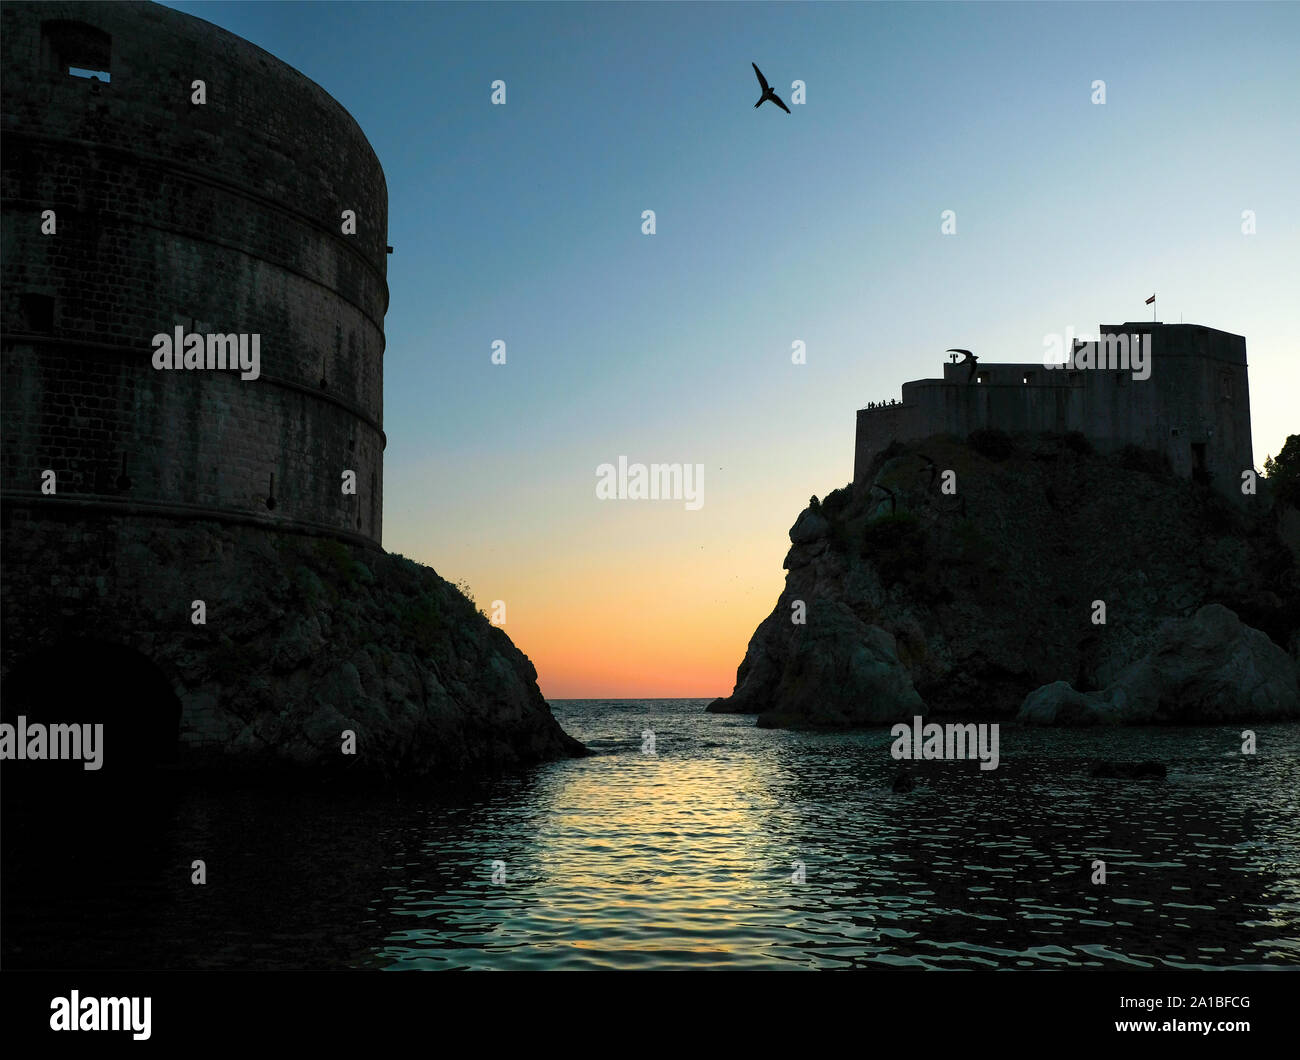 A view out to the Adriatic sea from the Old Town of Dubrovnik at sunset. The view shows the city walls with Alpine Swifts in flight in the sky Stock Photo